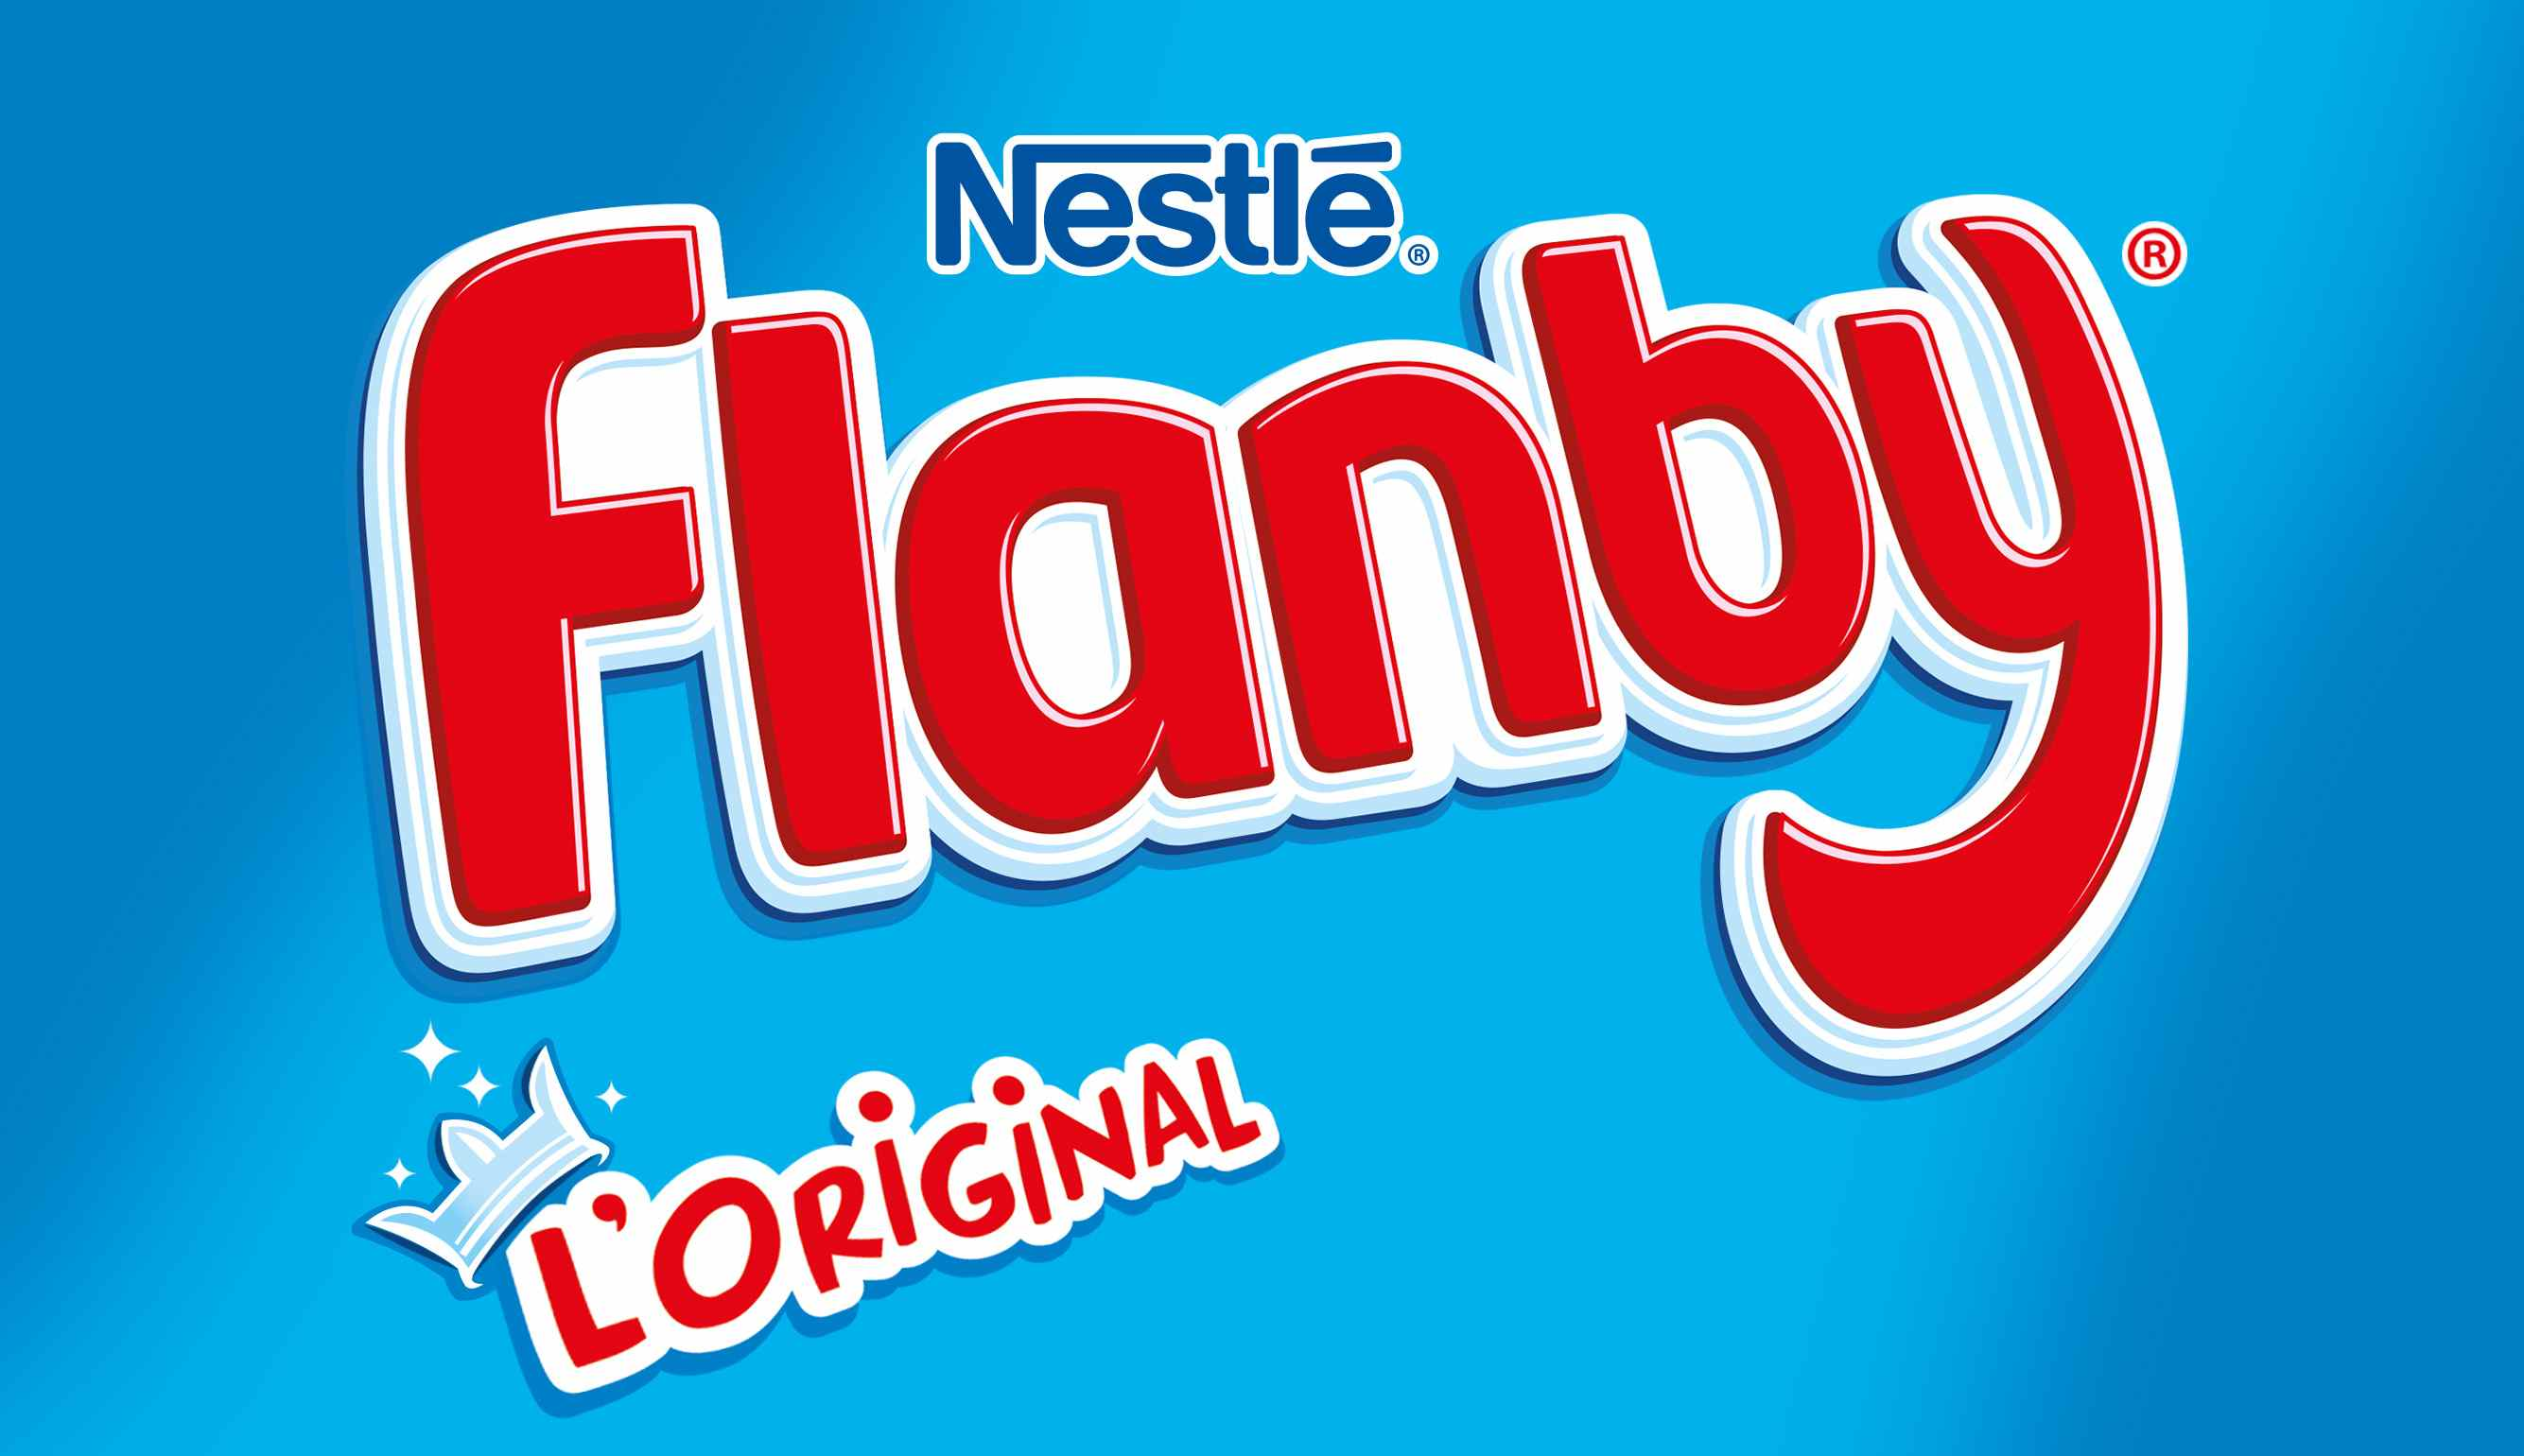 Flanby